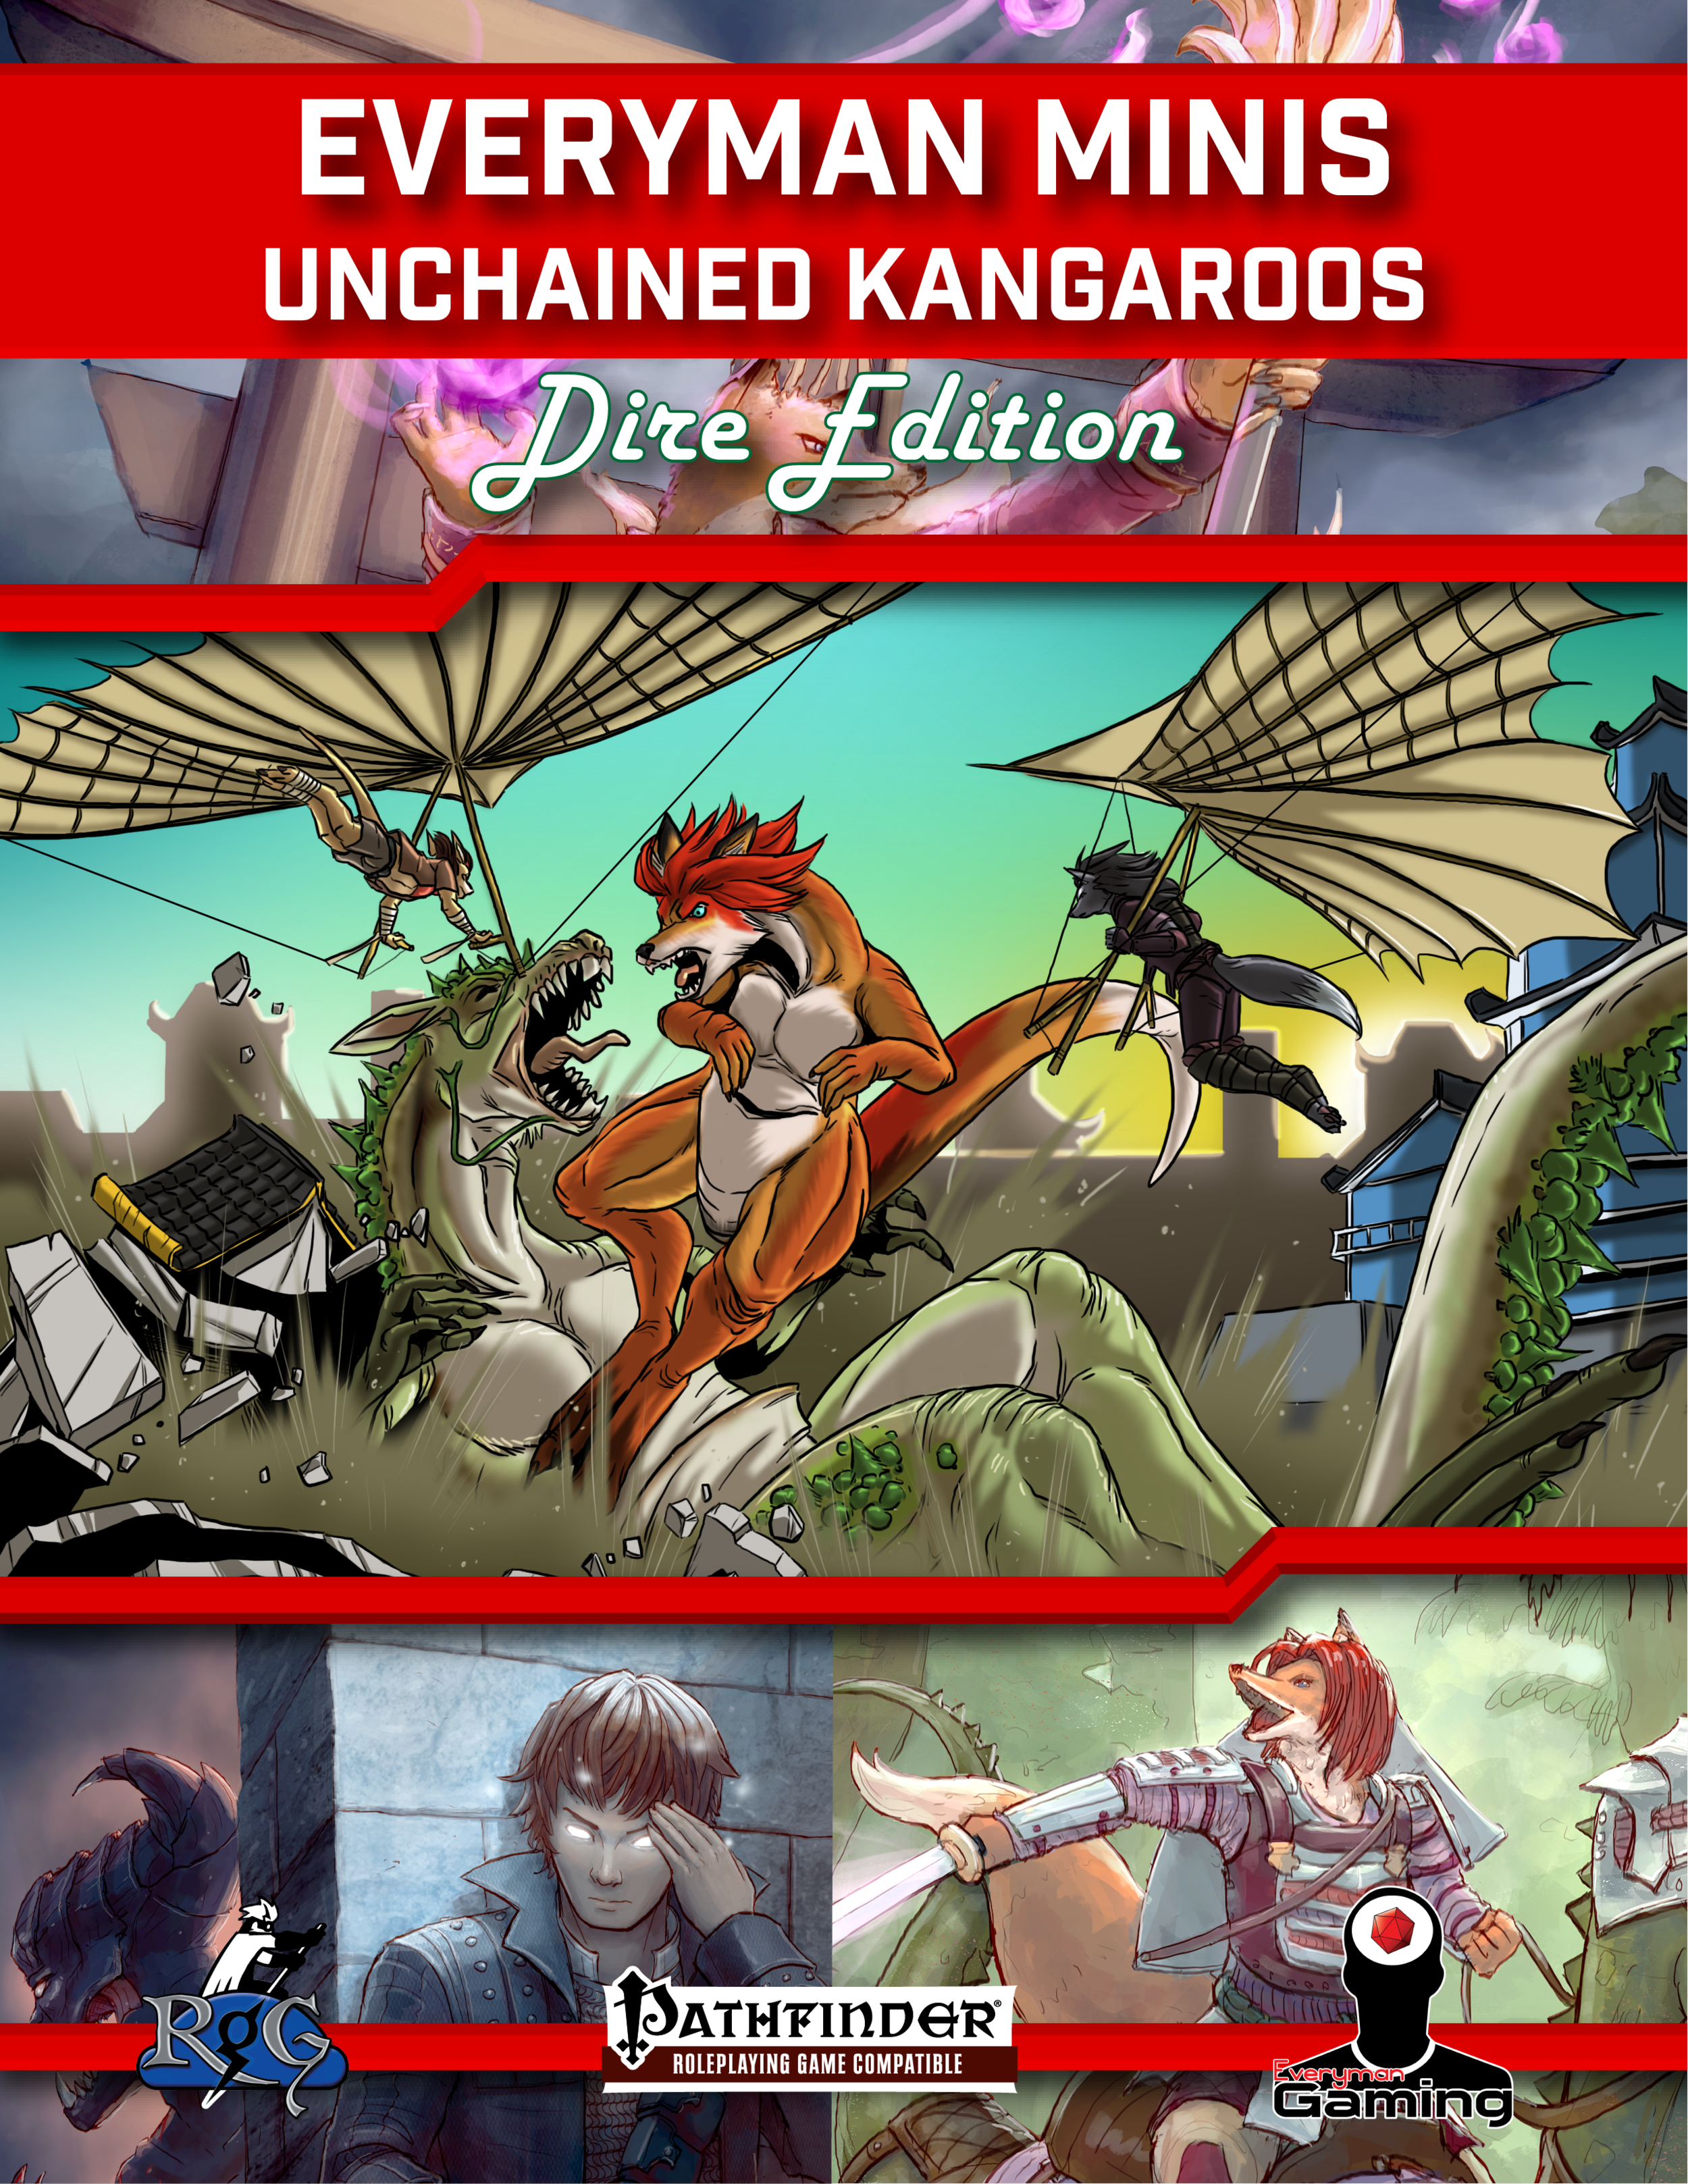 59 EMM Unchained Kangaroos, Dire Edition.png